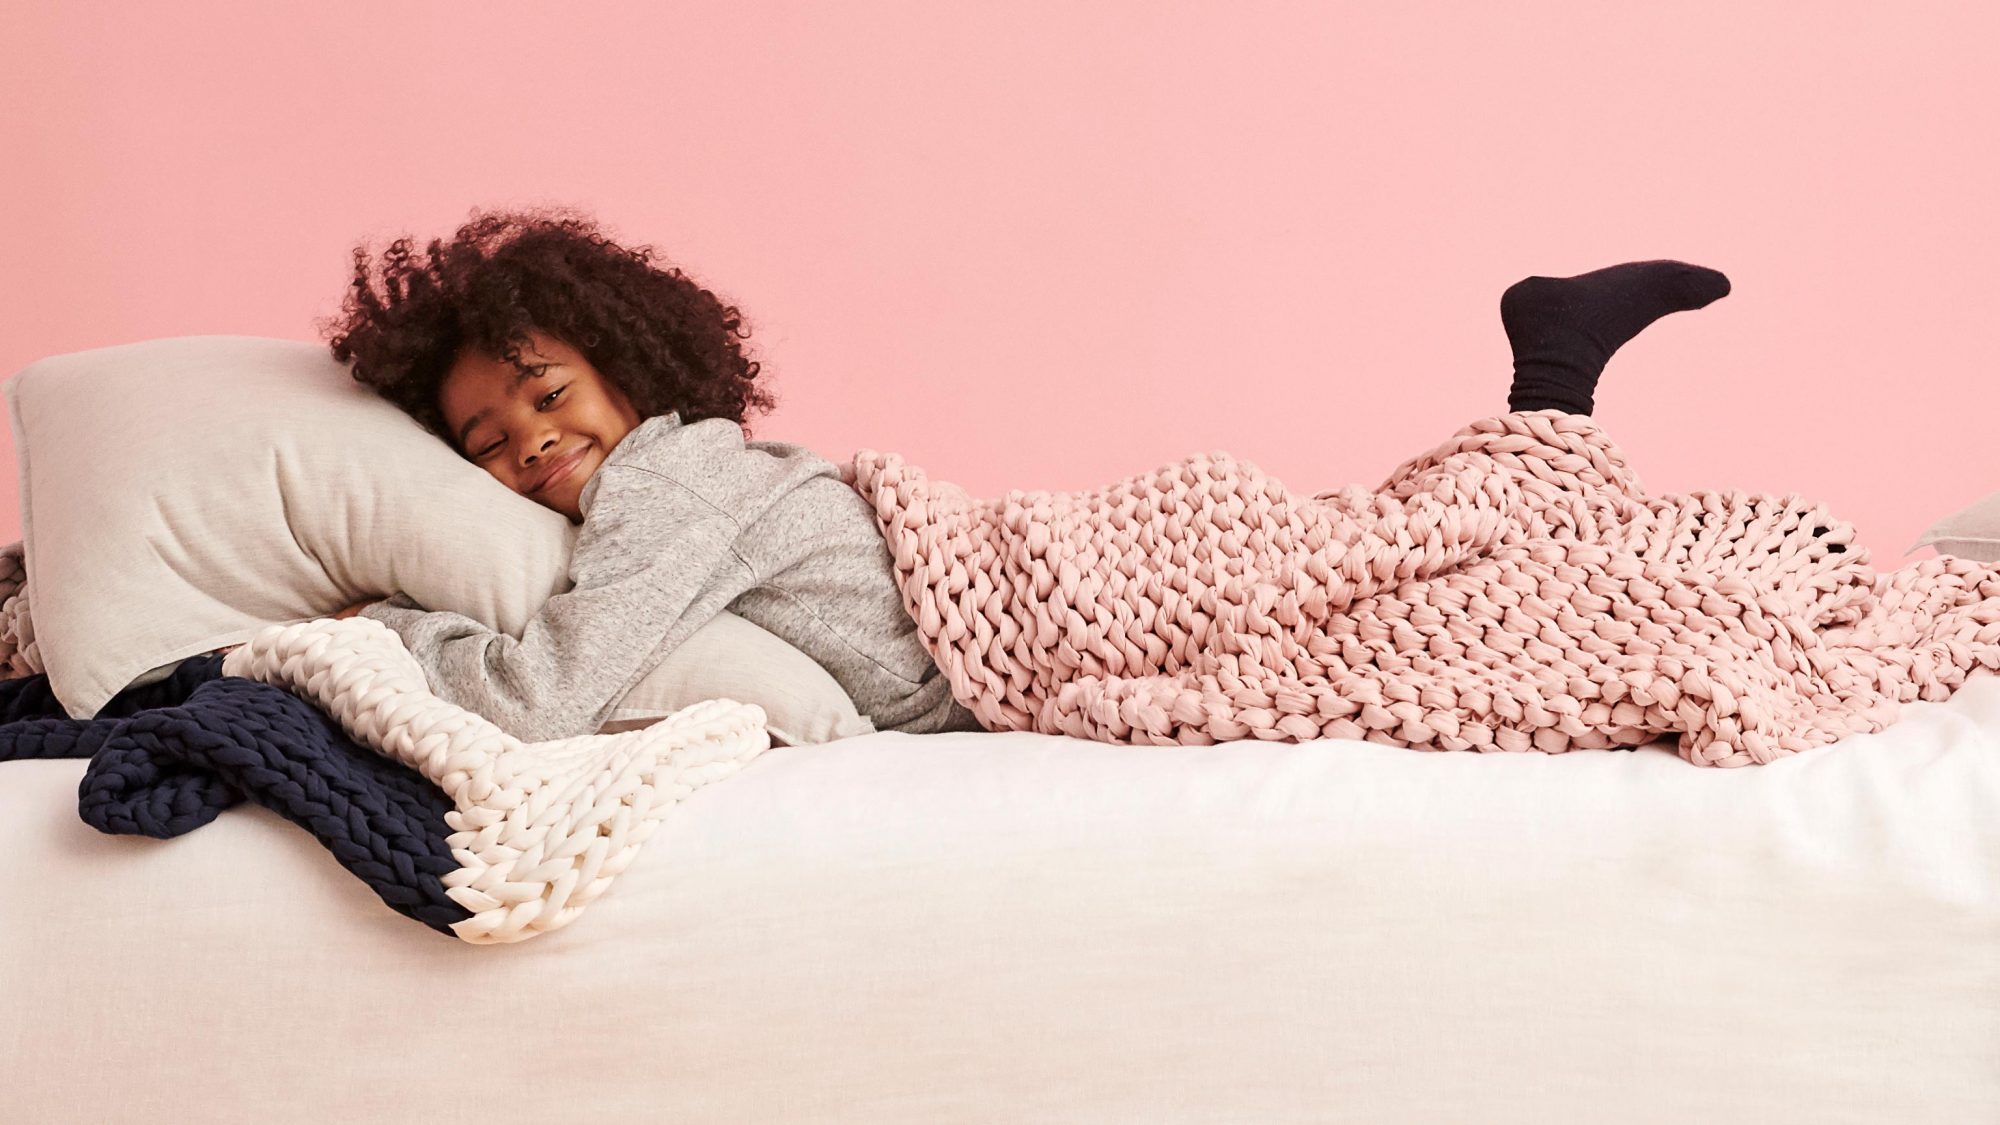 Bearaby weighted blanket for kids - nappling blanket on child